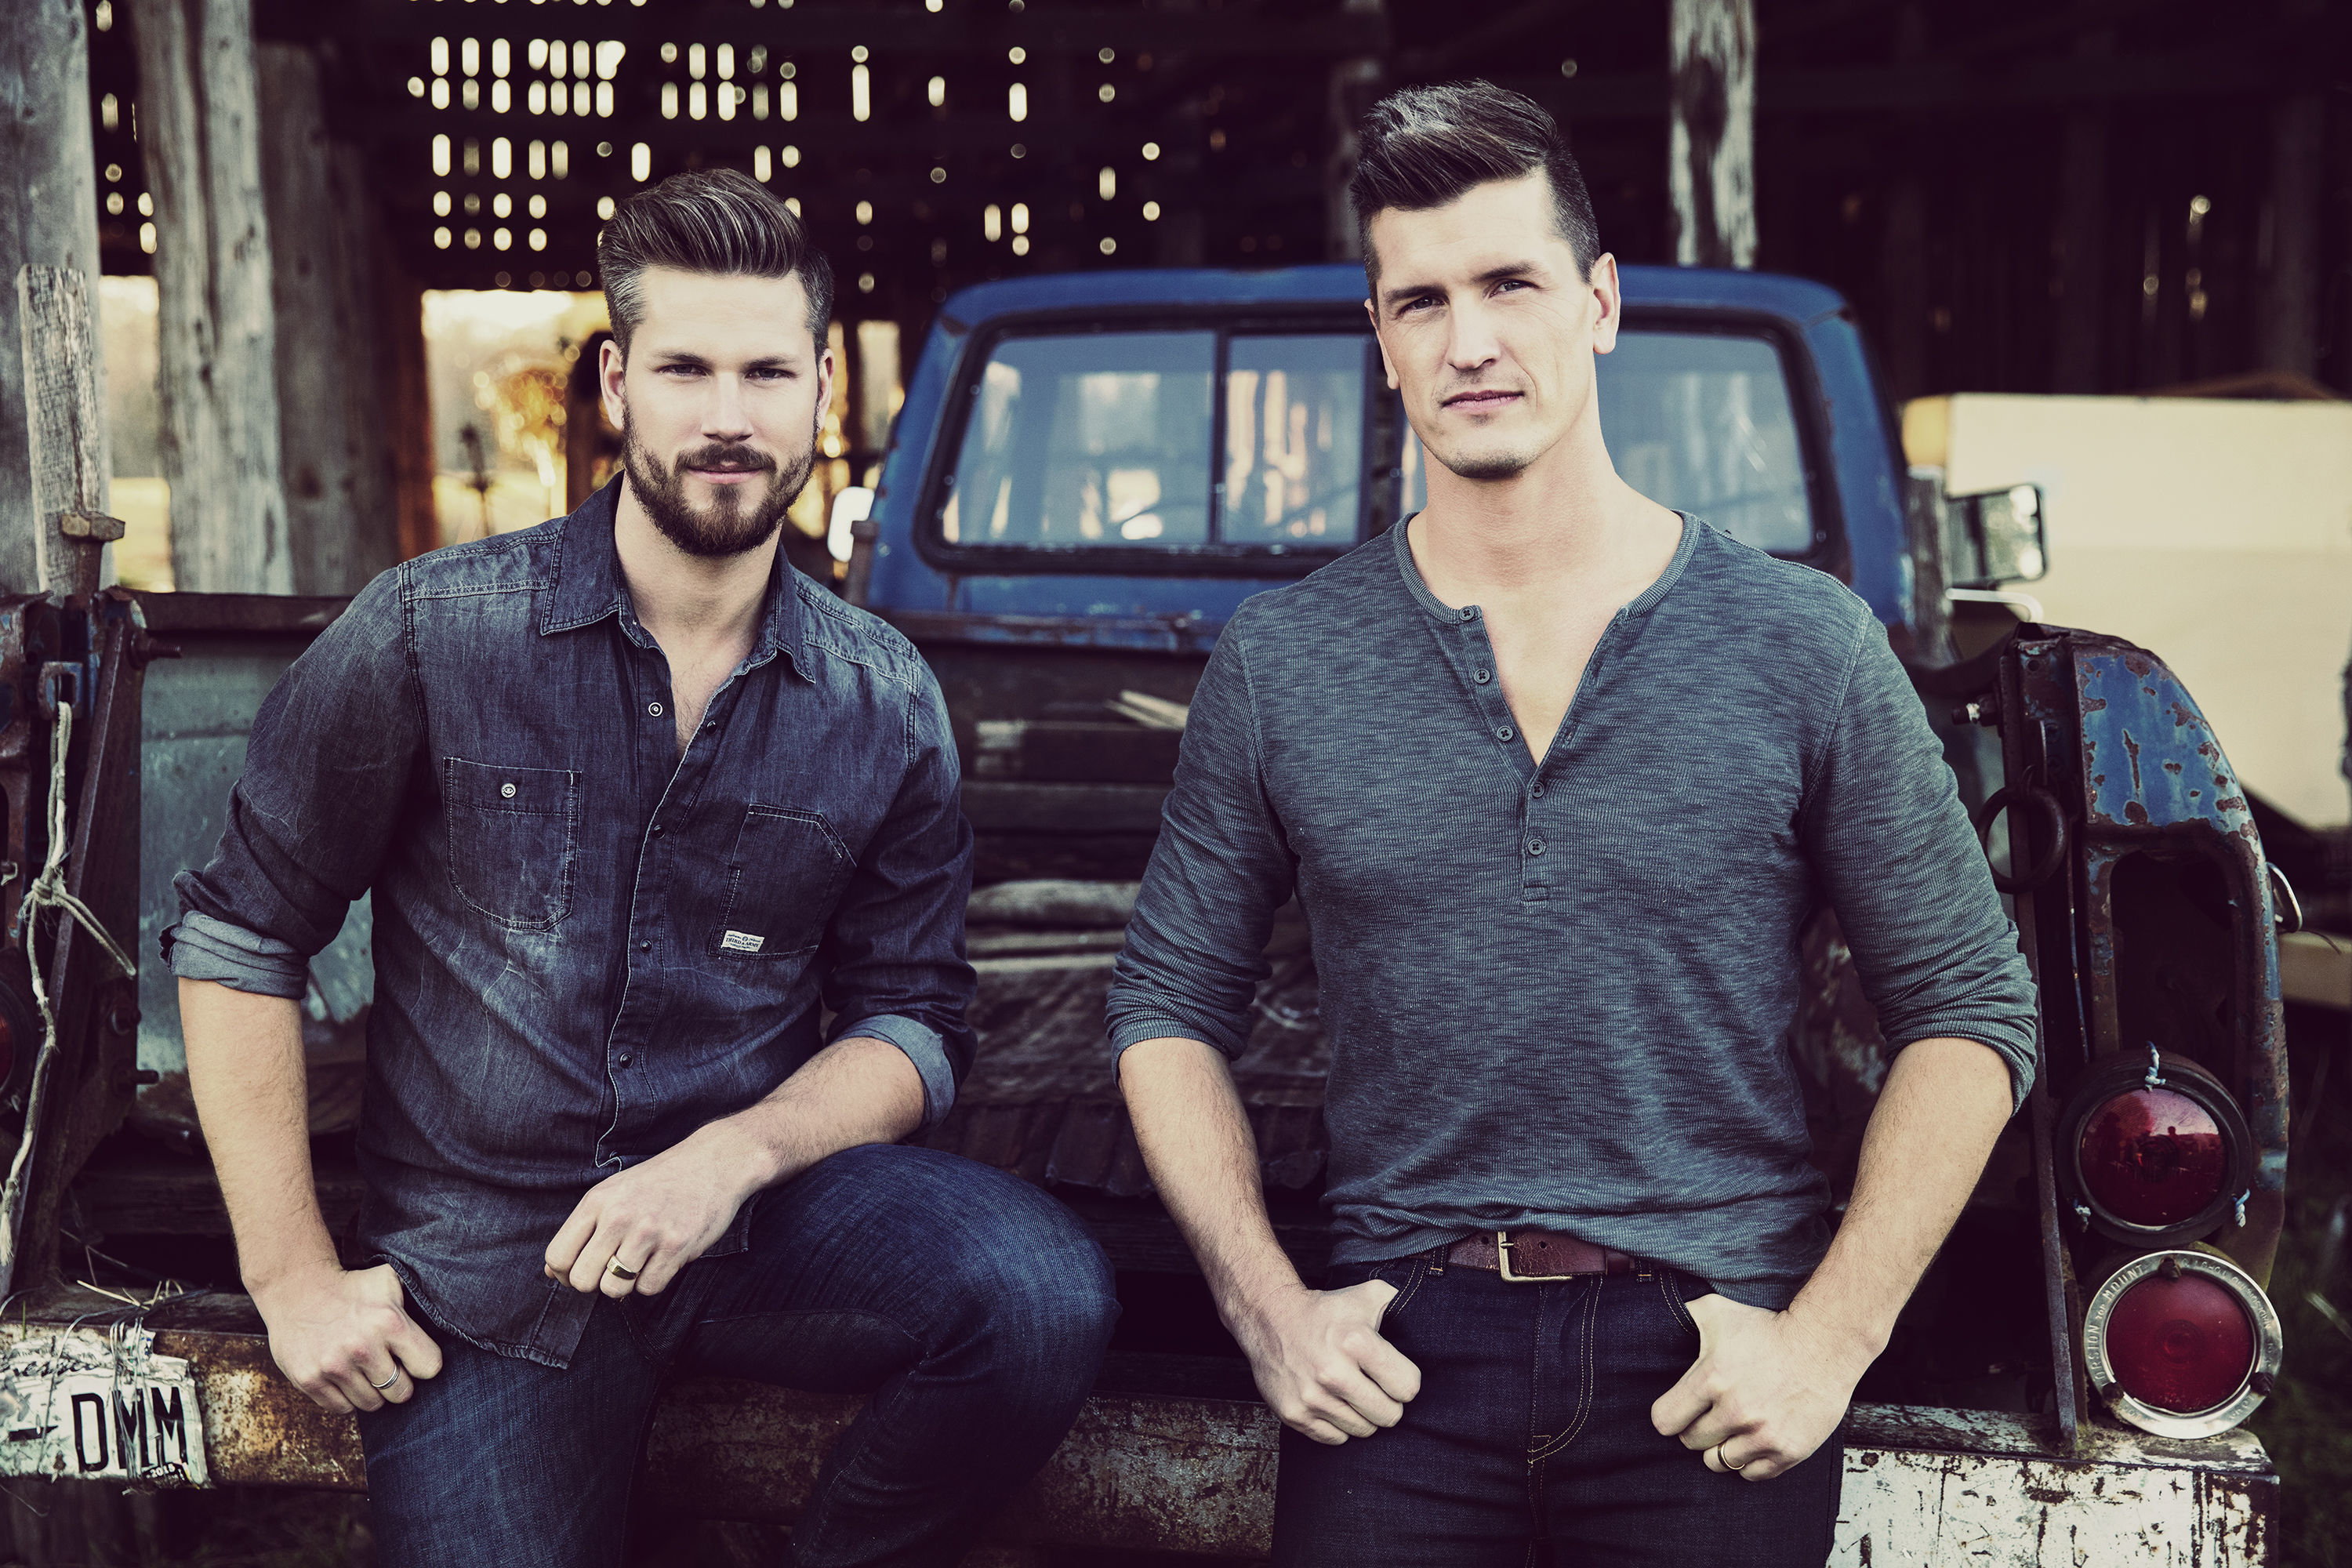 Exclusive Music Premiere: High Valley 'Make You Mine' Farmhouse Sessions